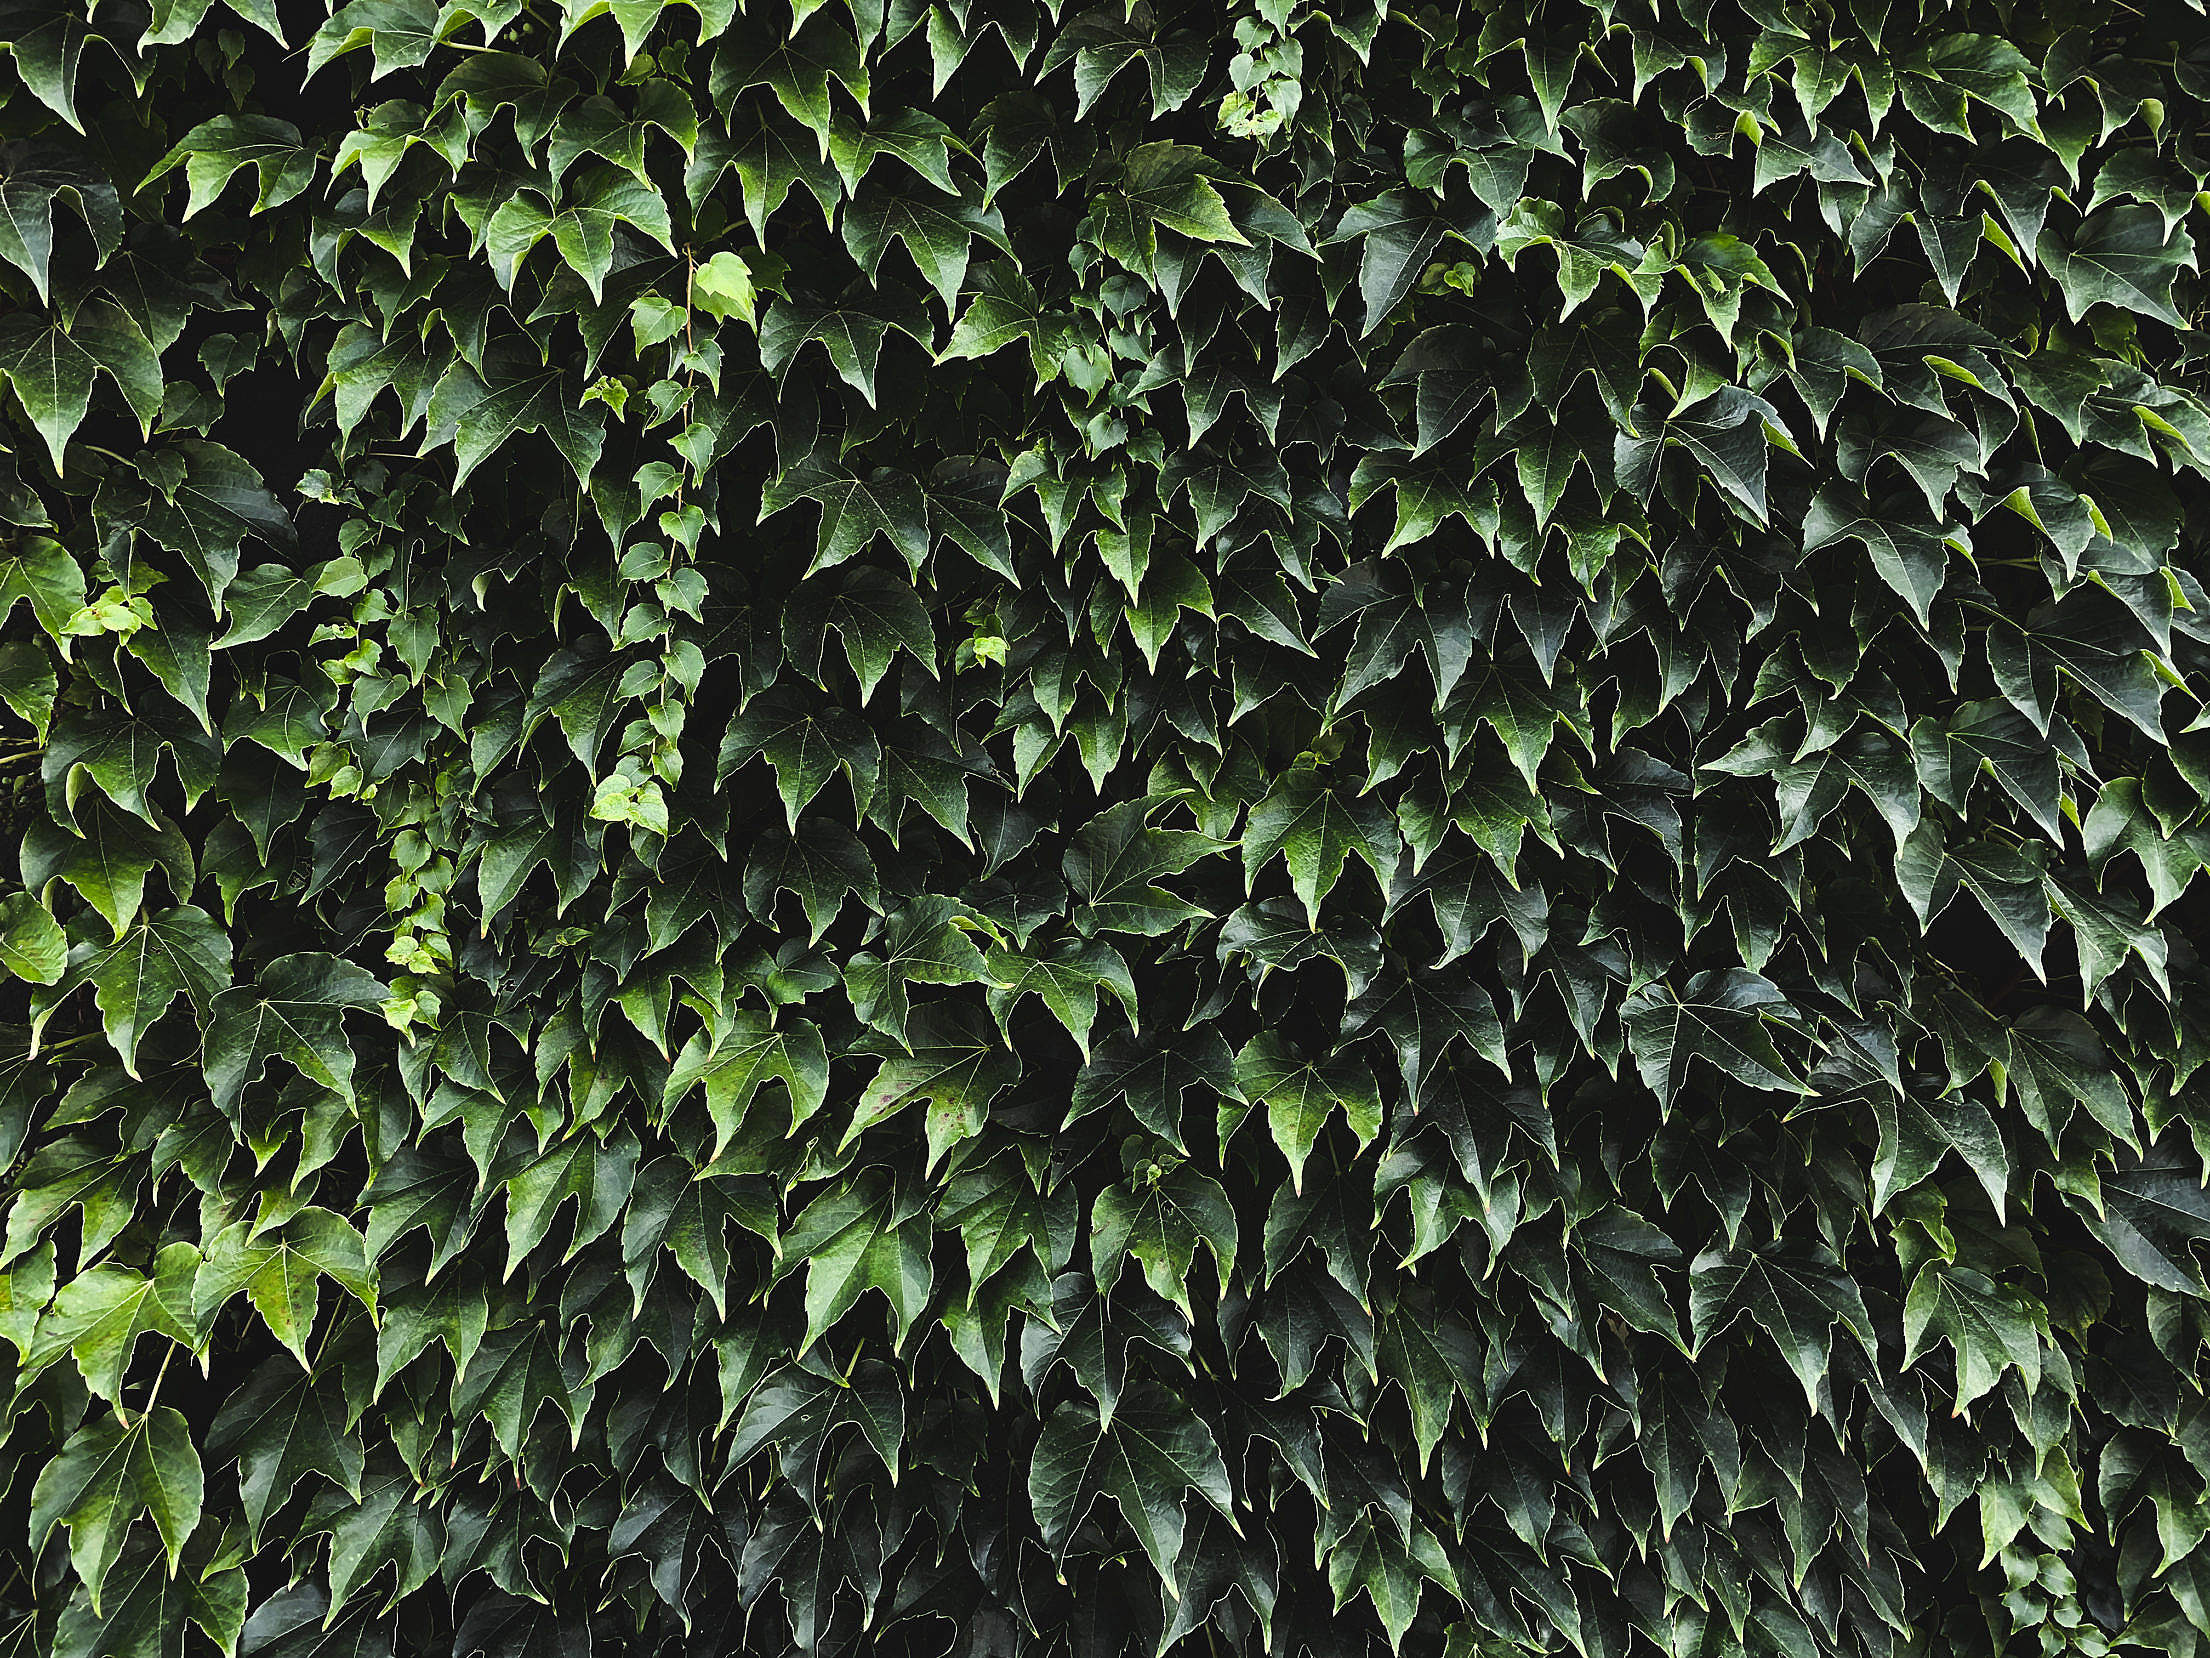 Ivy Texture Free Stock Photo